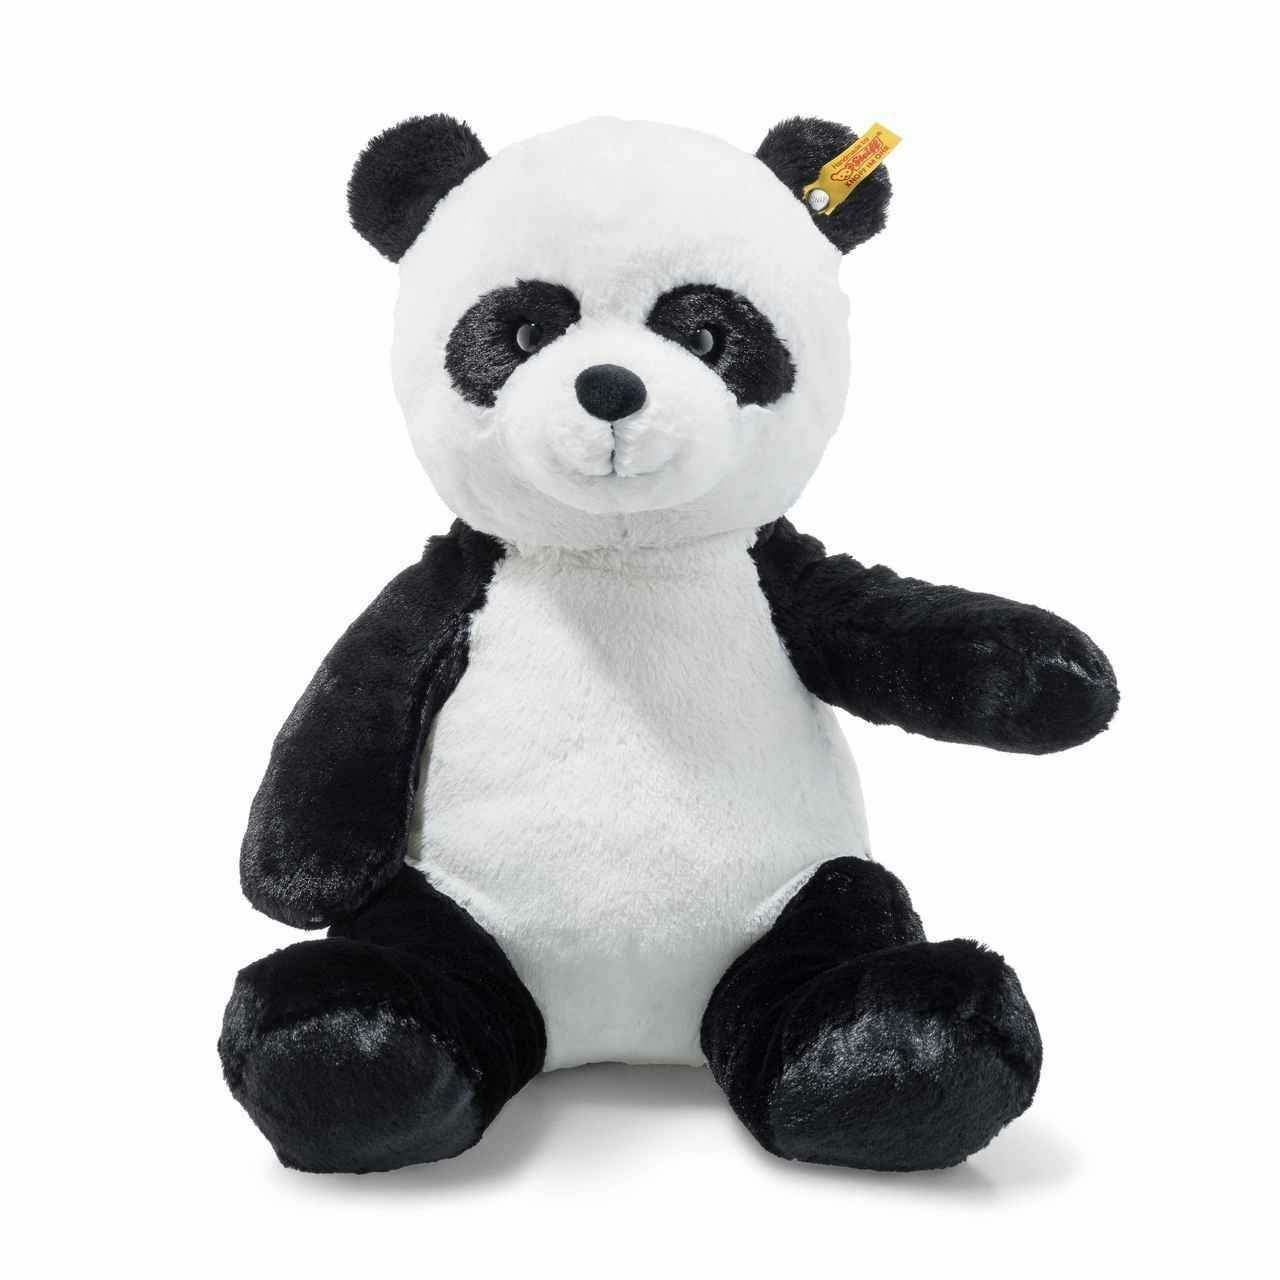 Steiff Soft and Cuddly Ming Plush Stuffed Panda Bear Button in Ear - 12 Inches